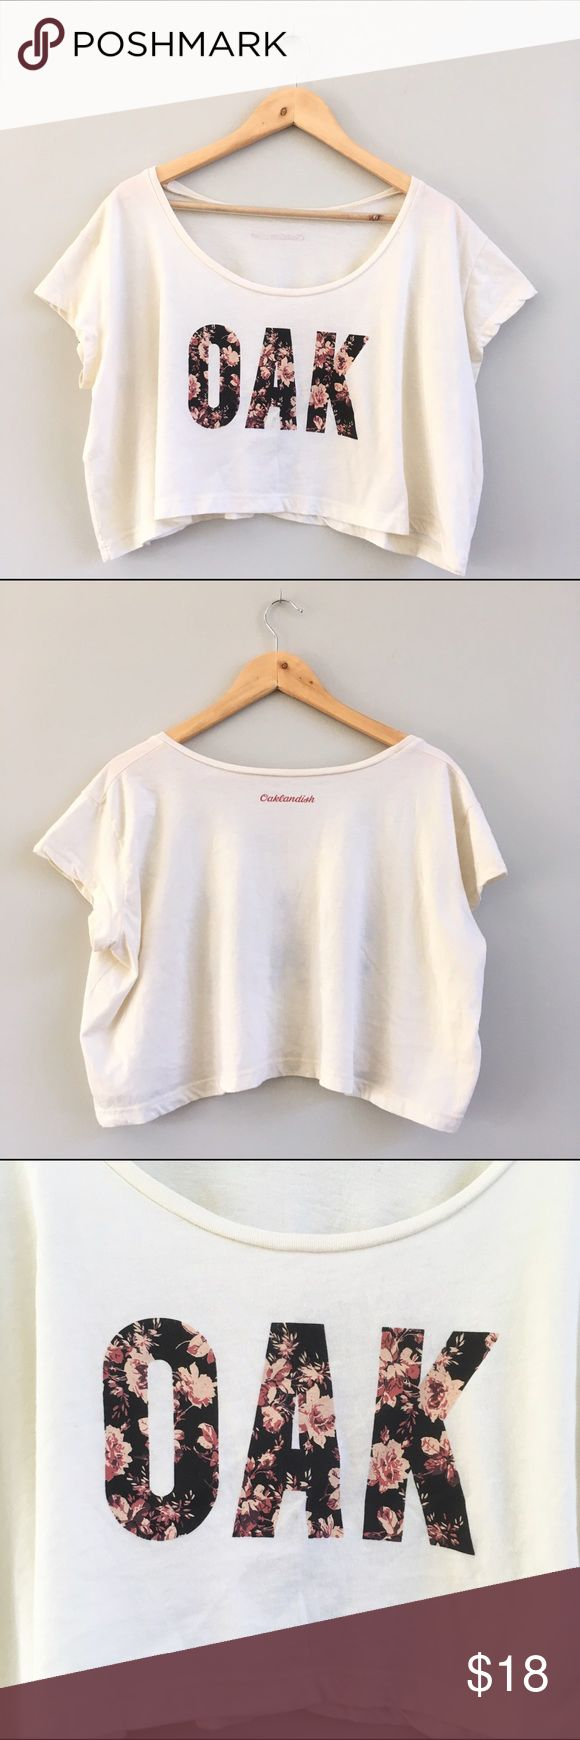 Oaklandish OAK Crop Top Channel your west coast street style with this cream crop top from Oaklandish. Rep Oakland with bold floral print logo! Tag says one size, but fits like a large. Bust: 24in, shoulder to hem: 16in, cotton/polyester blend. Gently worn, great condition. Tops Crop Tops